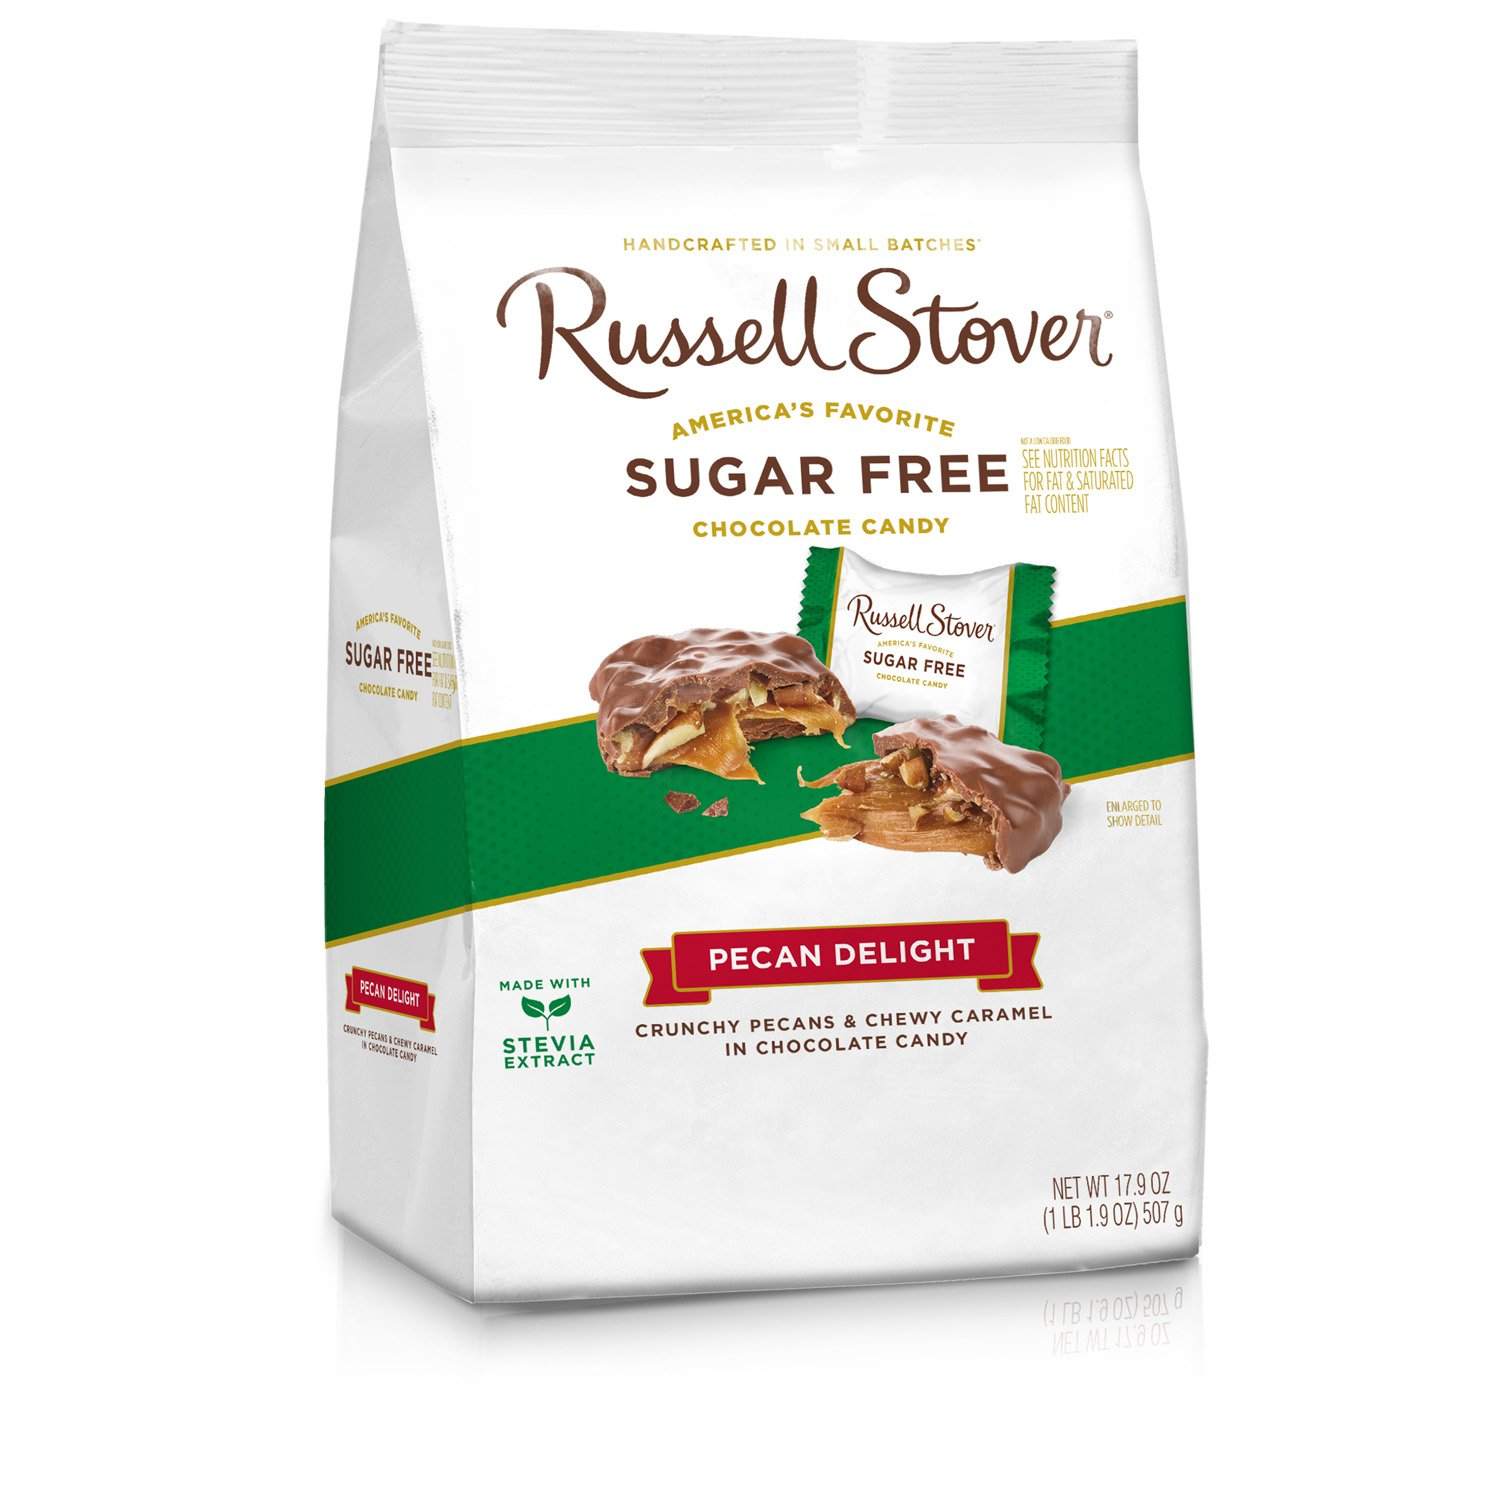 Russell Stover Sugar Free Pecan Delight Gusset, 17.9 Ounce Bag, 4 Count by Russell Stover